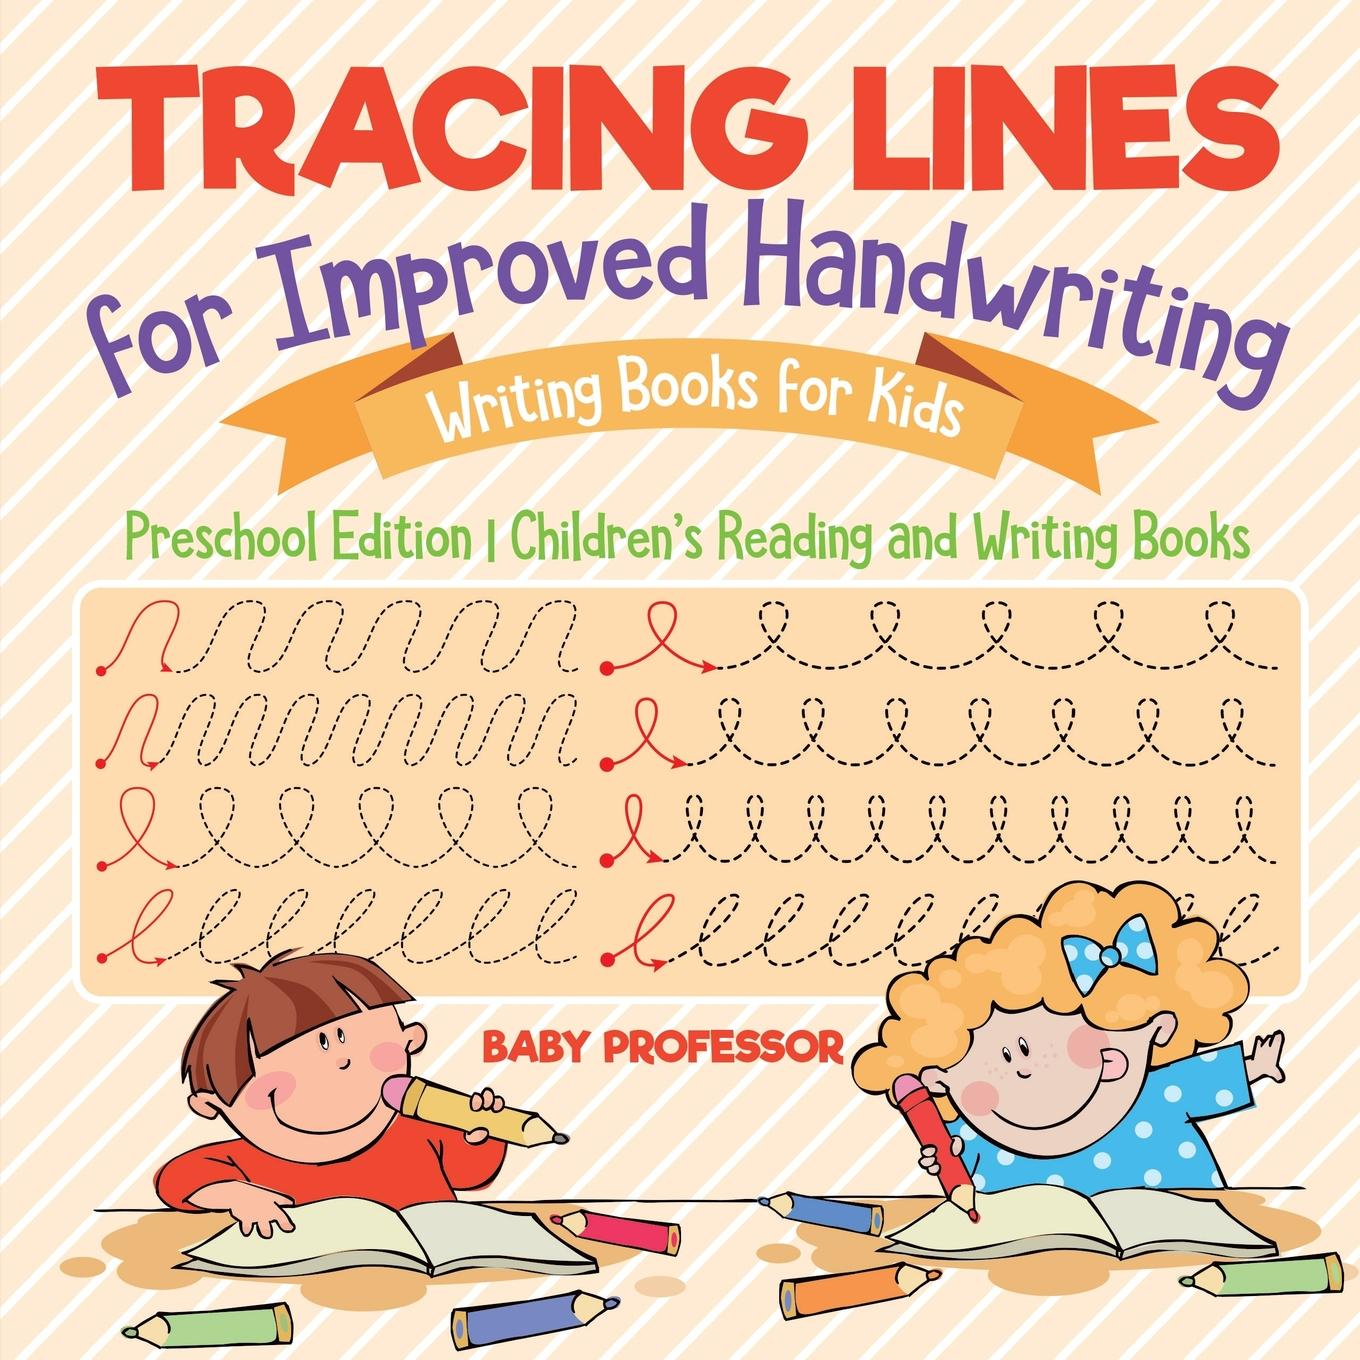 Tracing Lines for Improved Handwriting - Writing Books for Kids - Preschool Edition Children's Reading and Writing Books